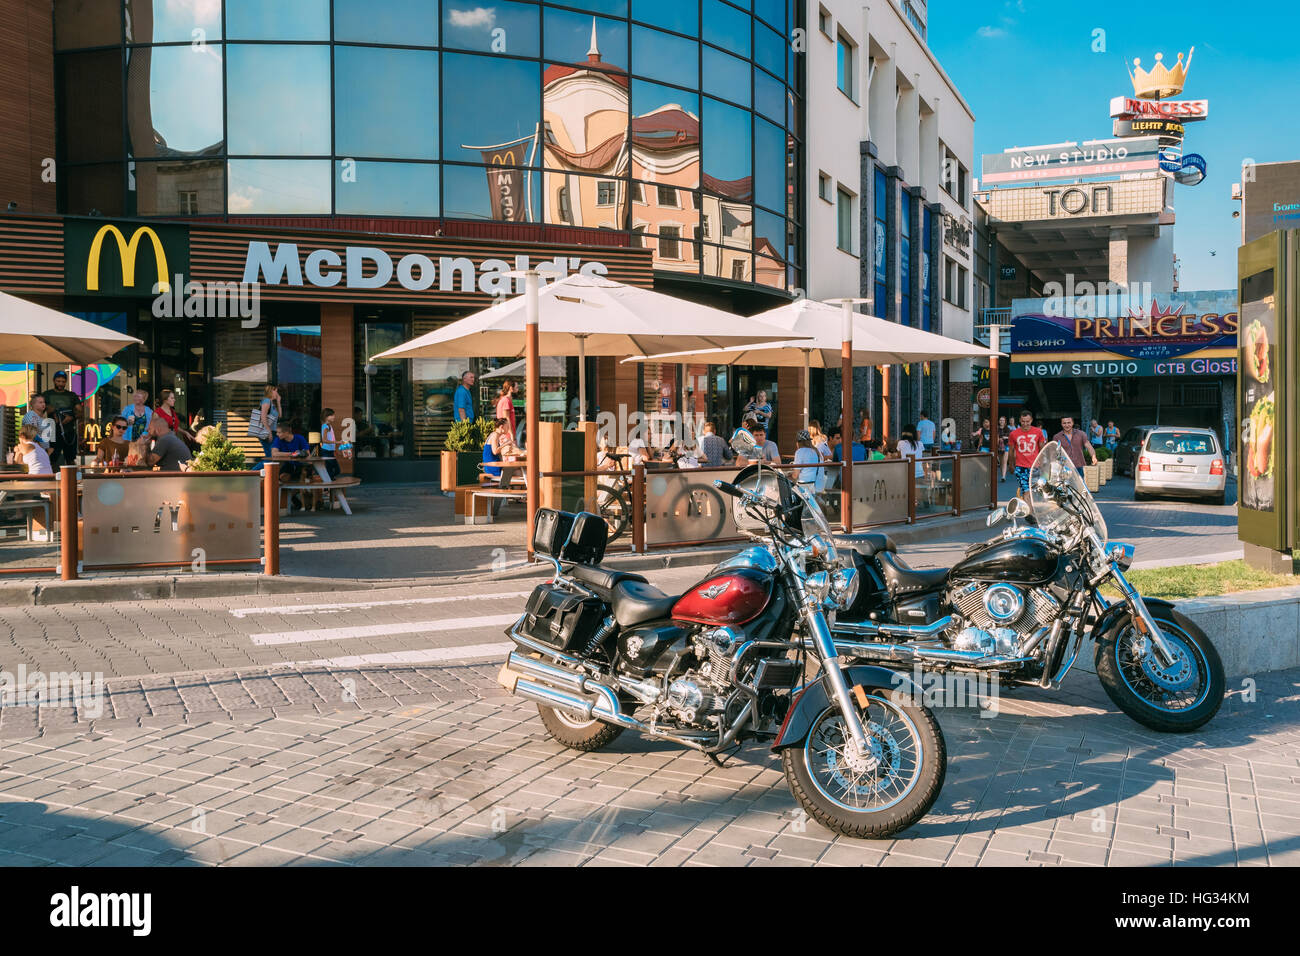 Minsk, Belarus. Two New Chopper Style Motorcycles, Parked Near Crowded Outdoor McDonald's Fast Food Restaurant - Stock Image